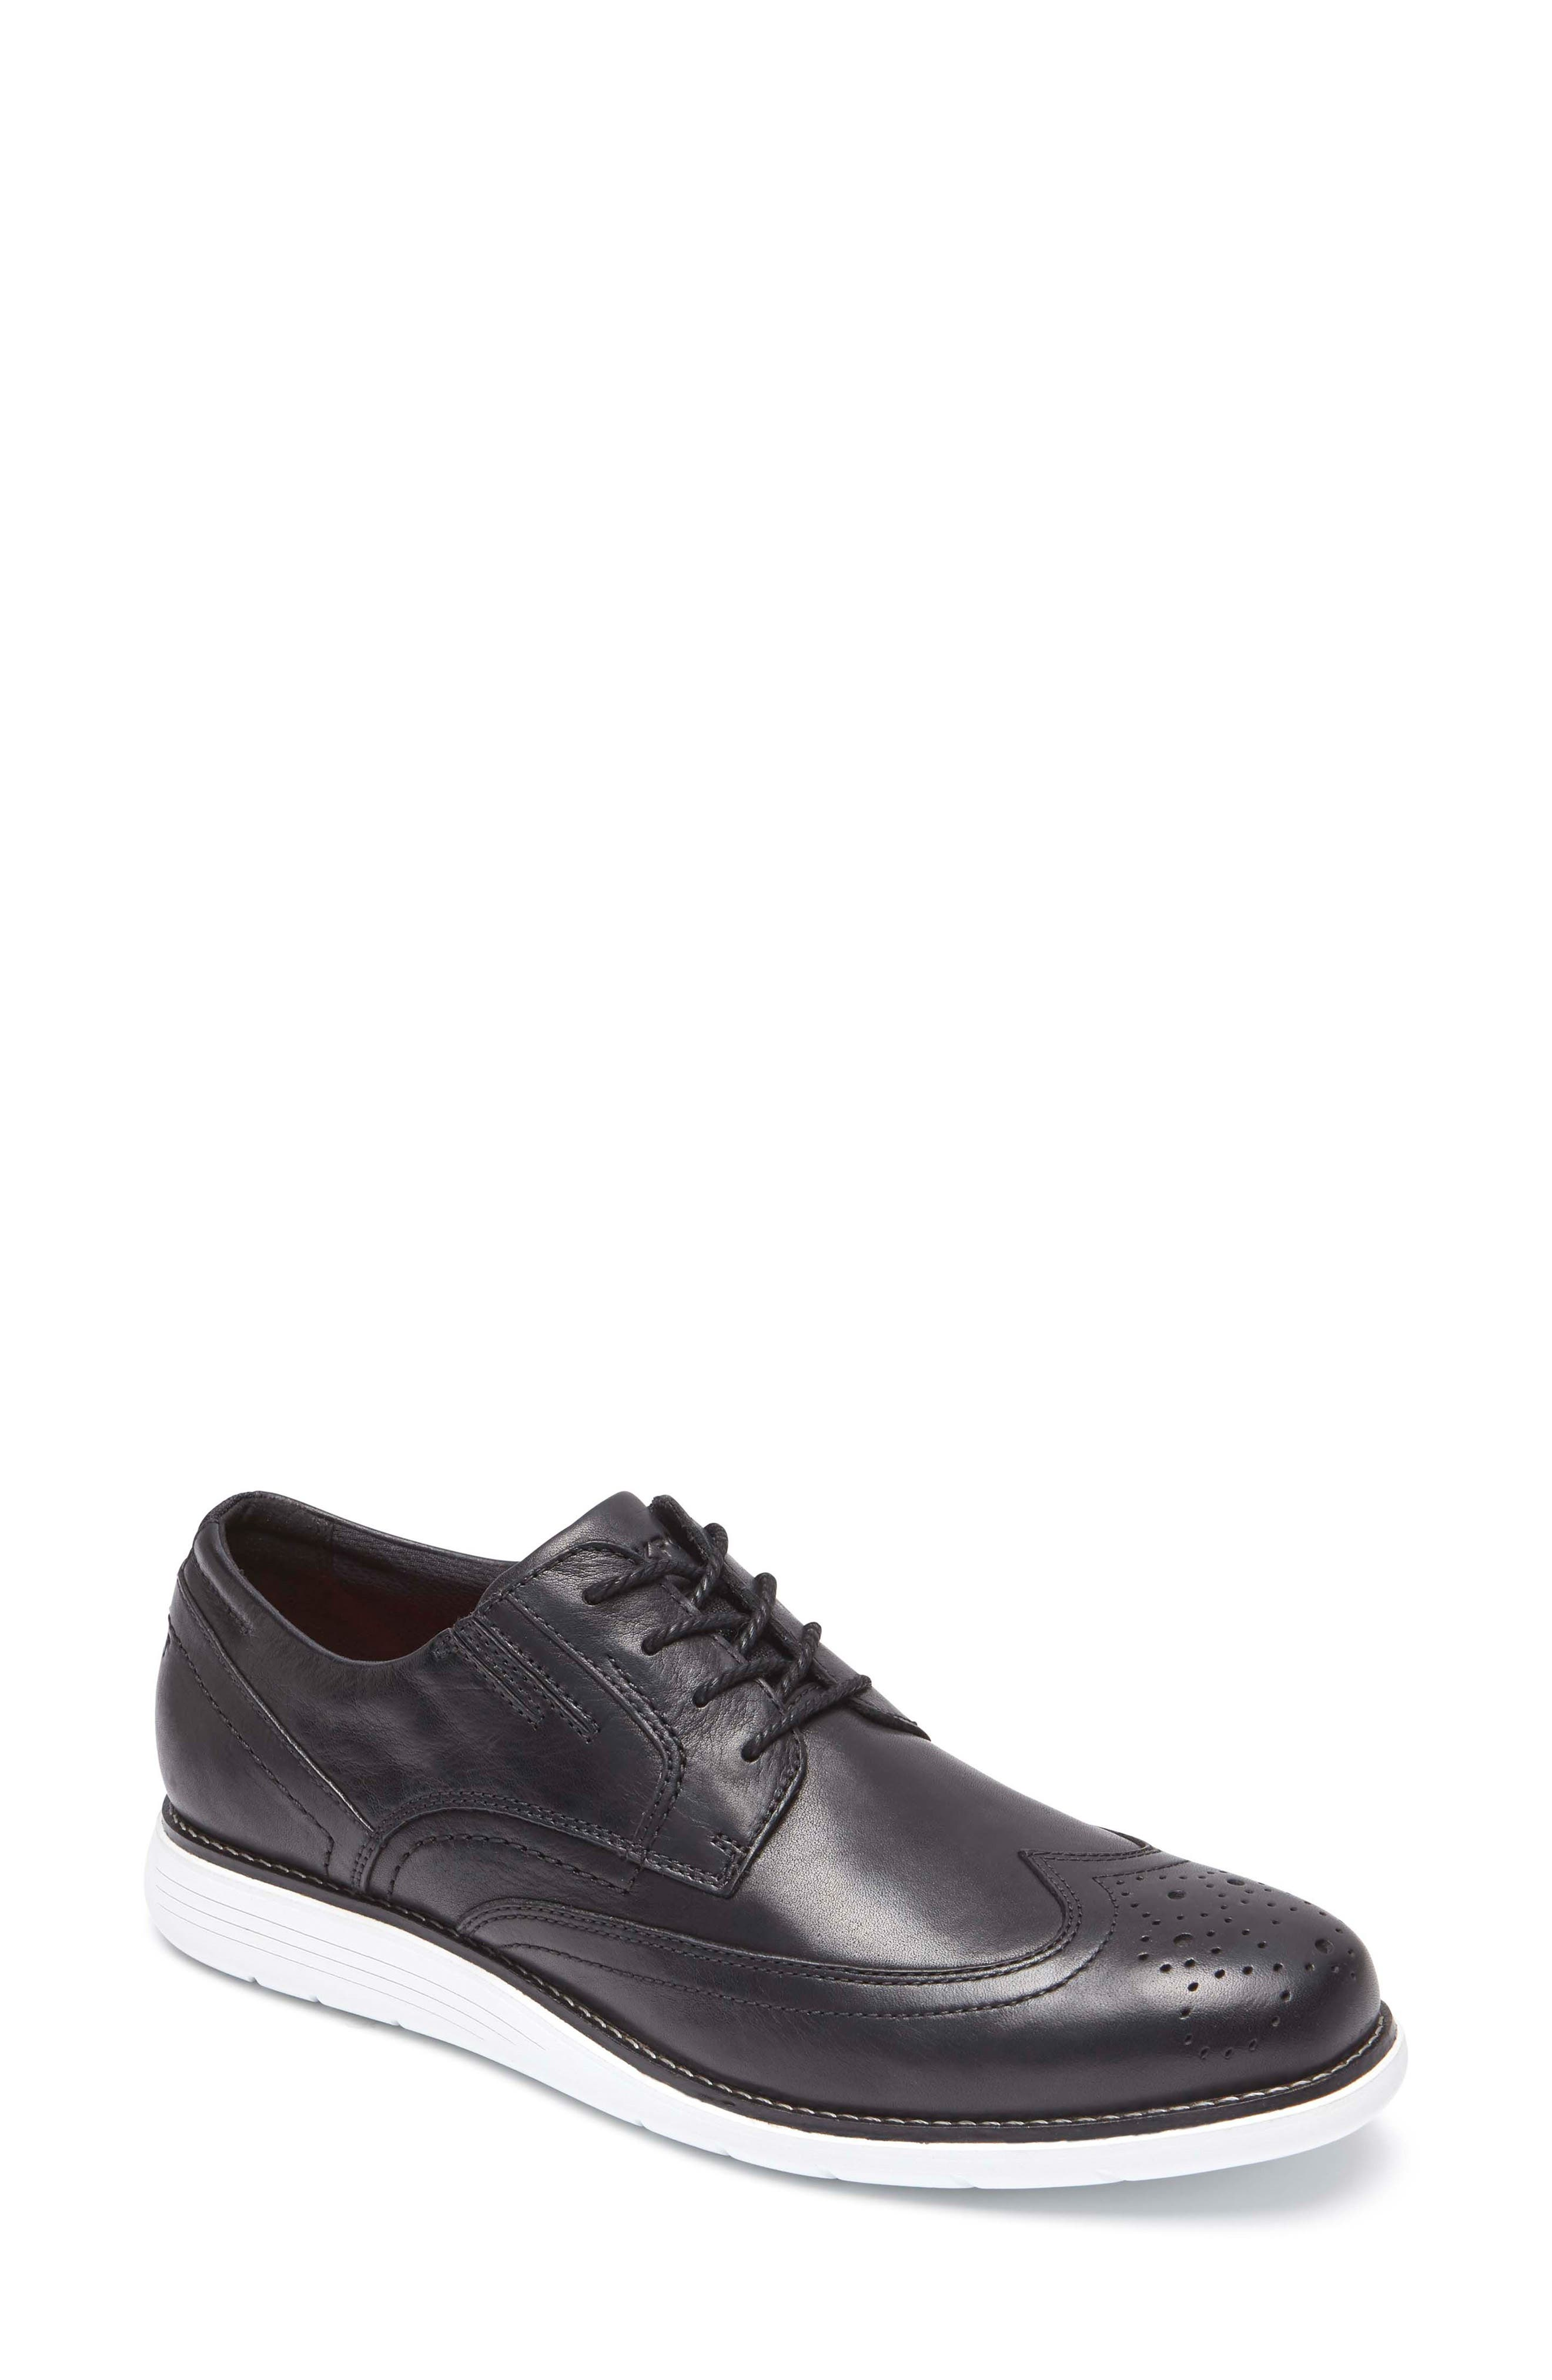 Total Motion Sport Wingtip,                             Main thumbnail 1, color,                             Black Leather